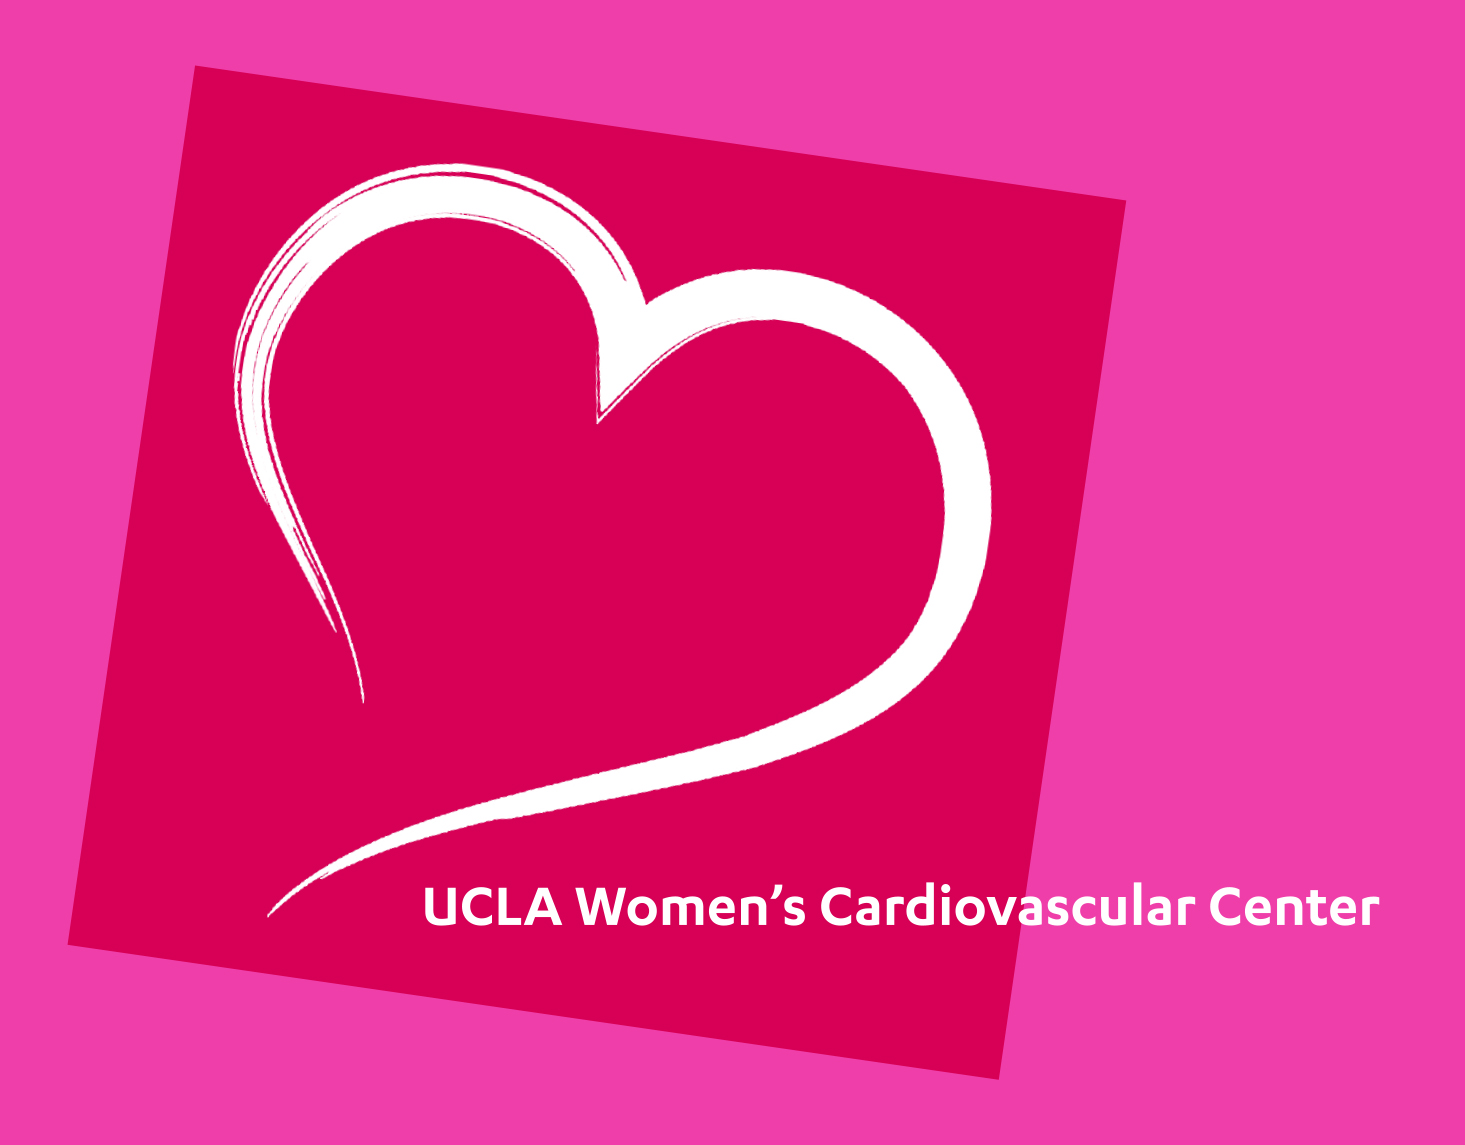 GIVING Women\'s CardioGraphic.jpg